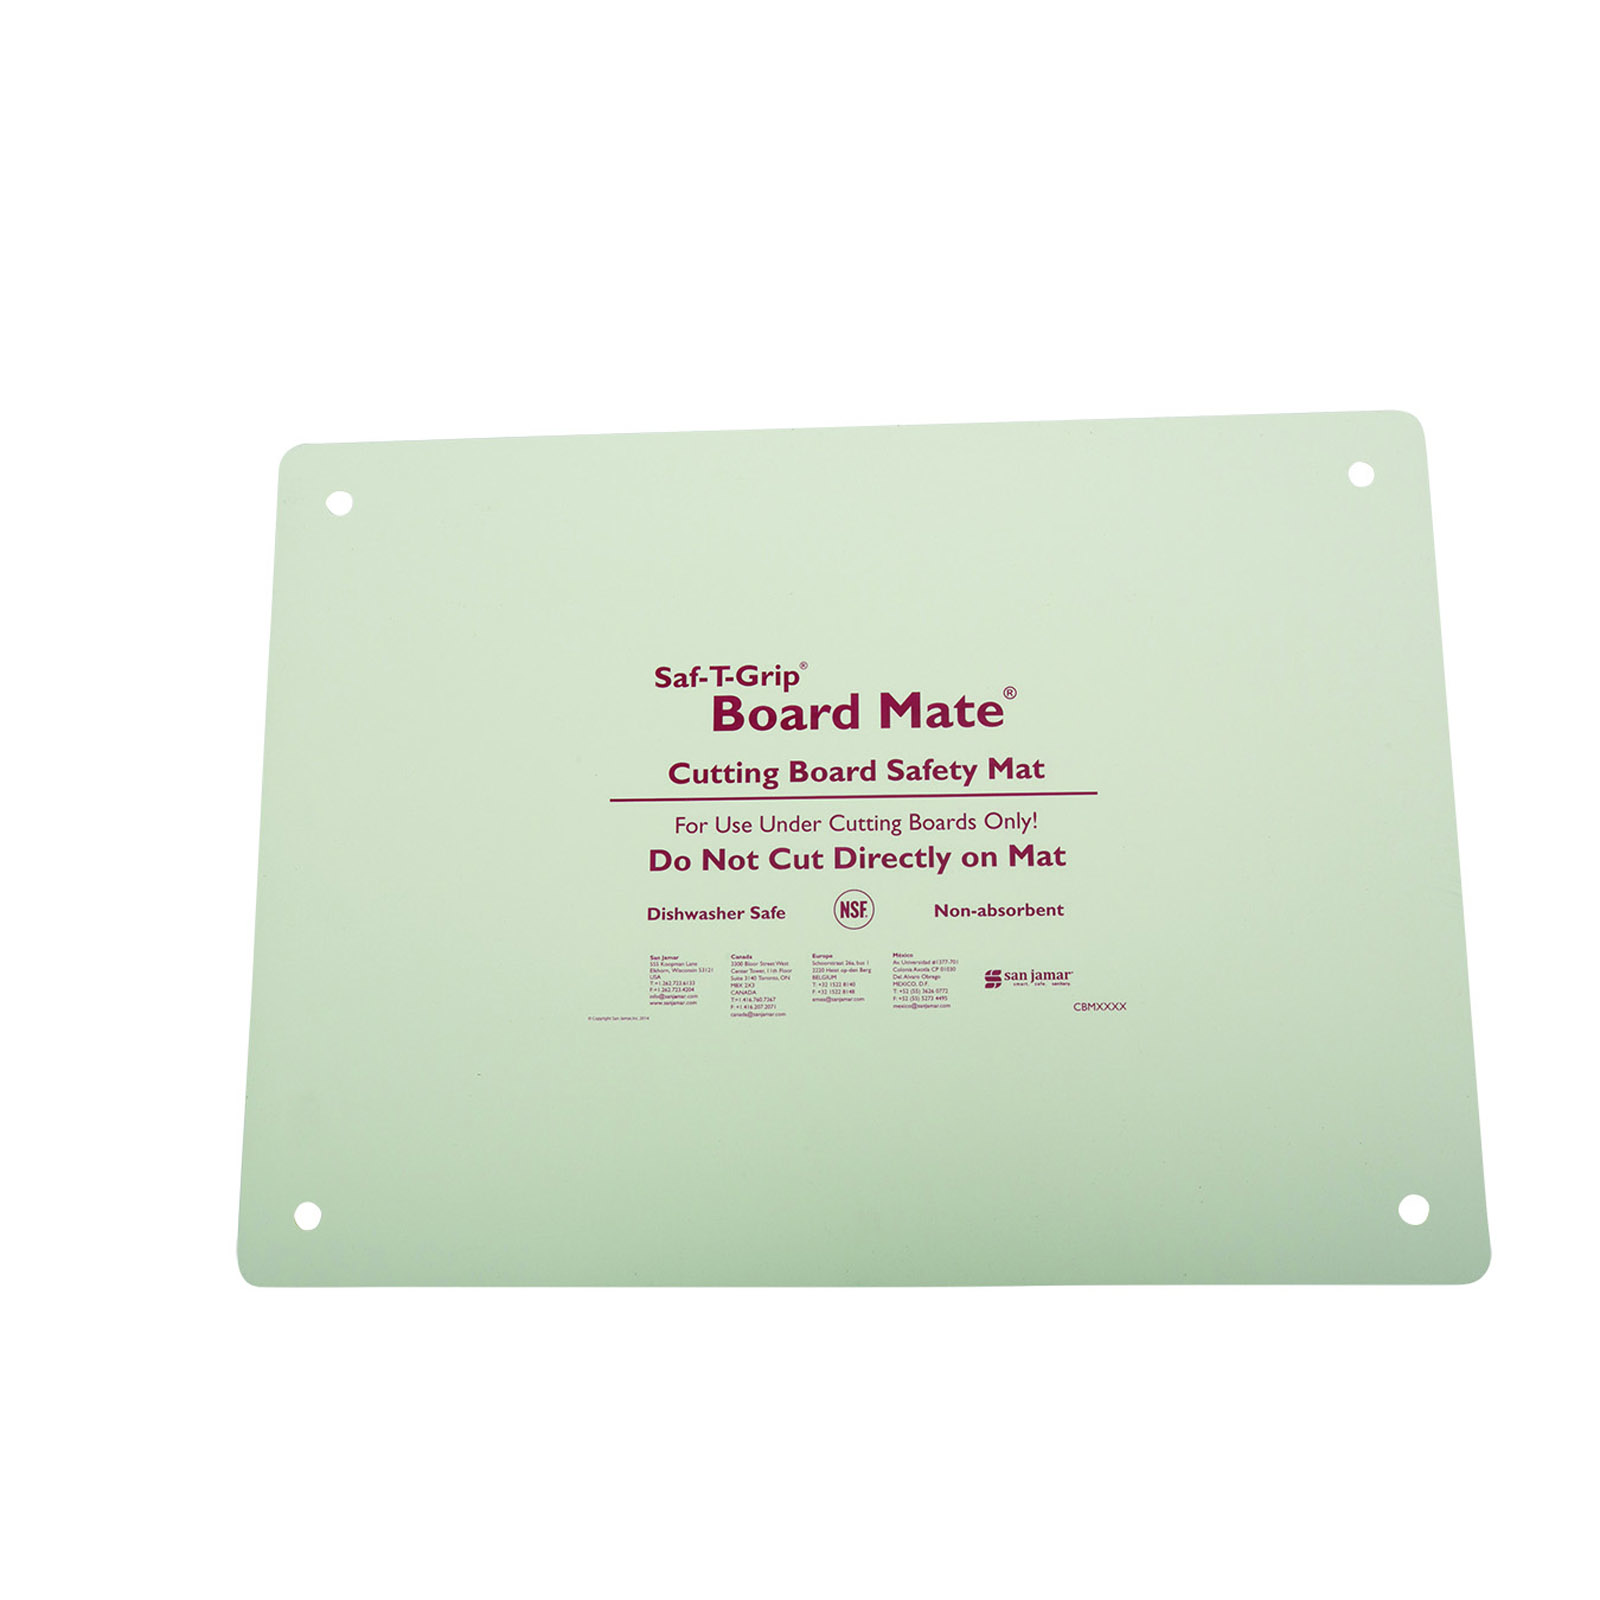 San Jamar CBM1318 cutting board mat